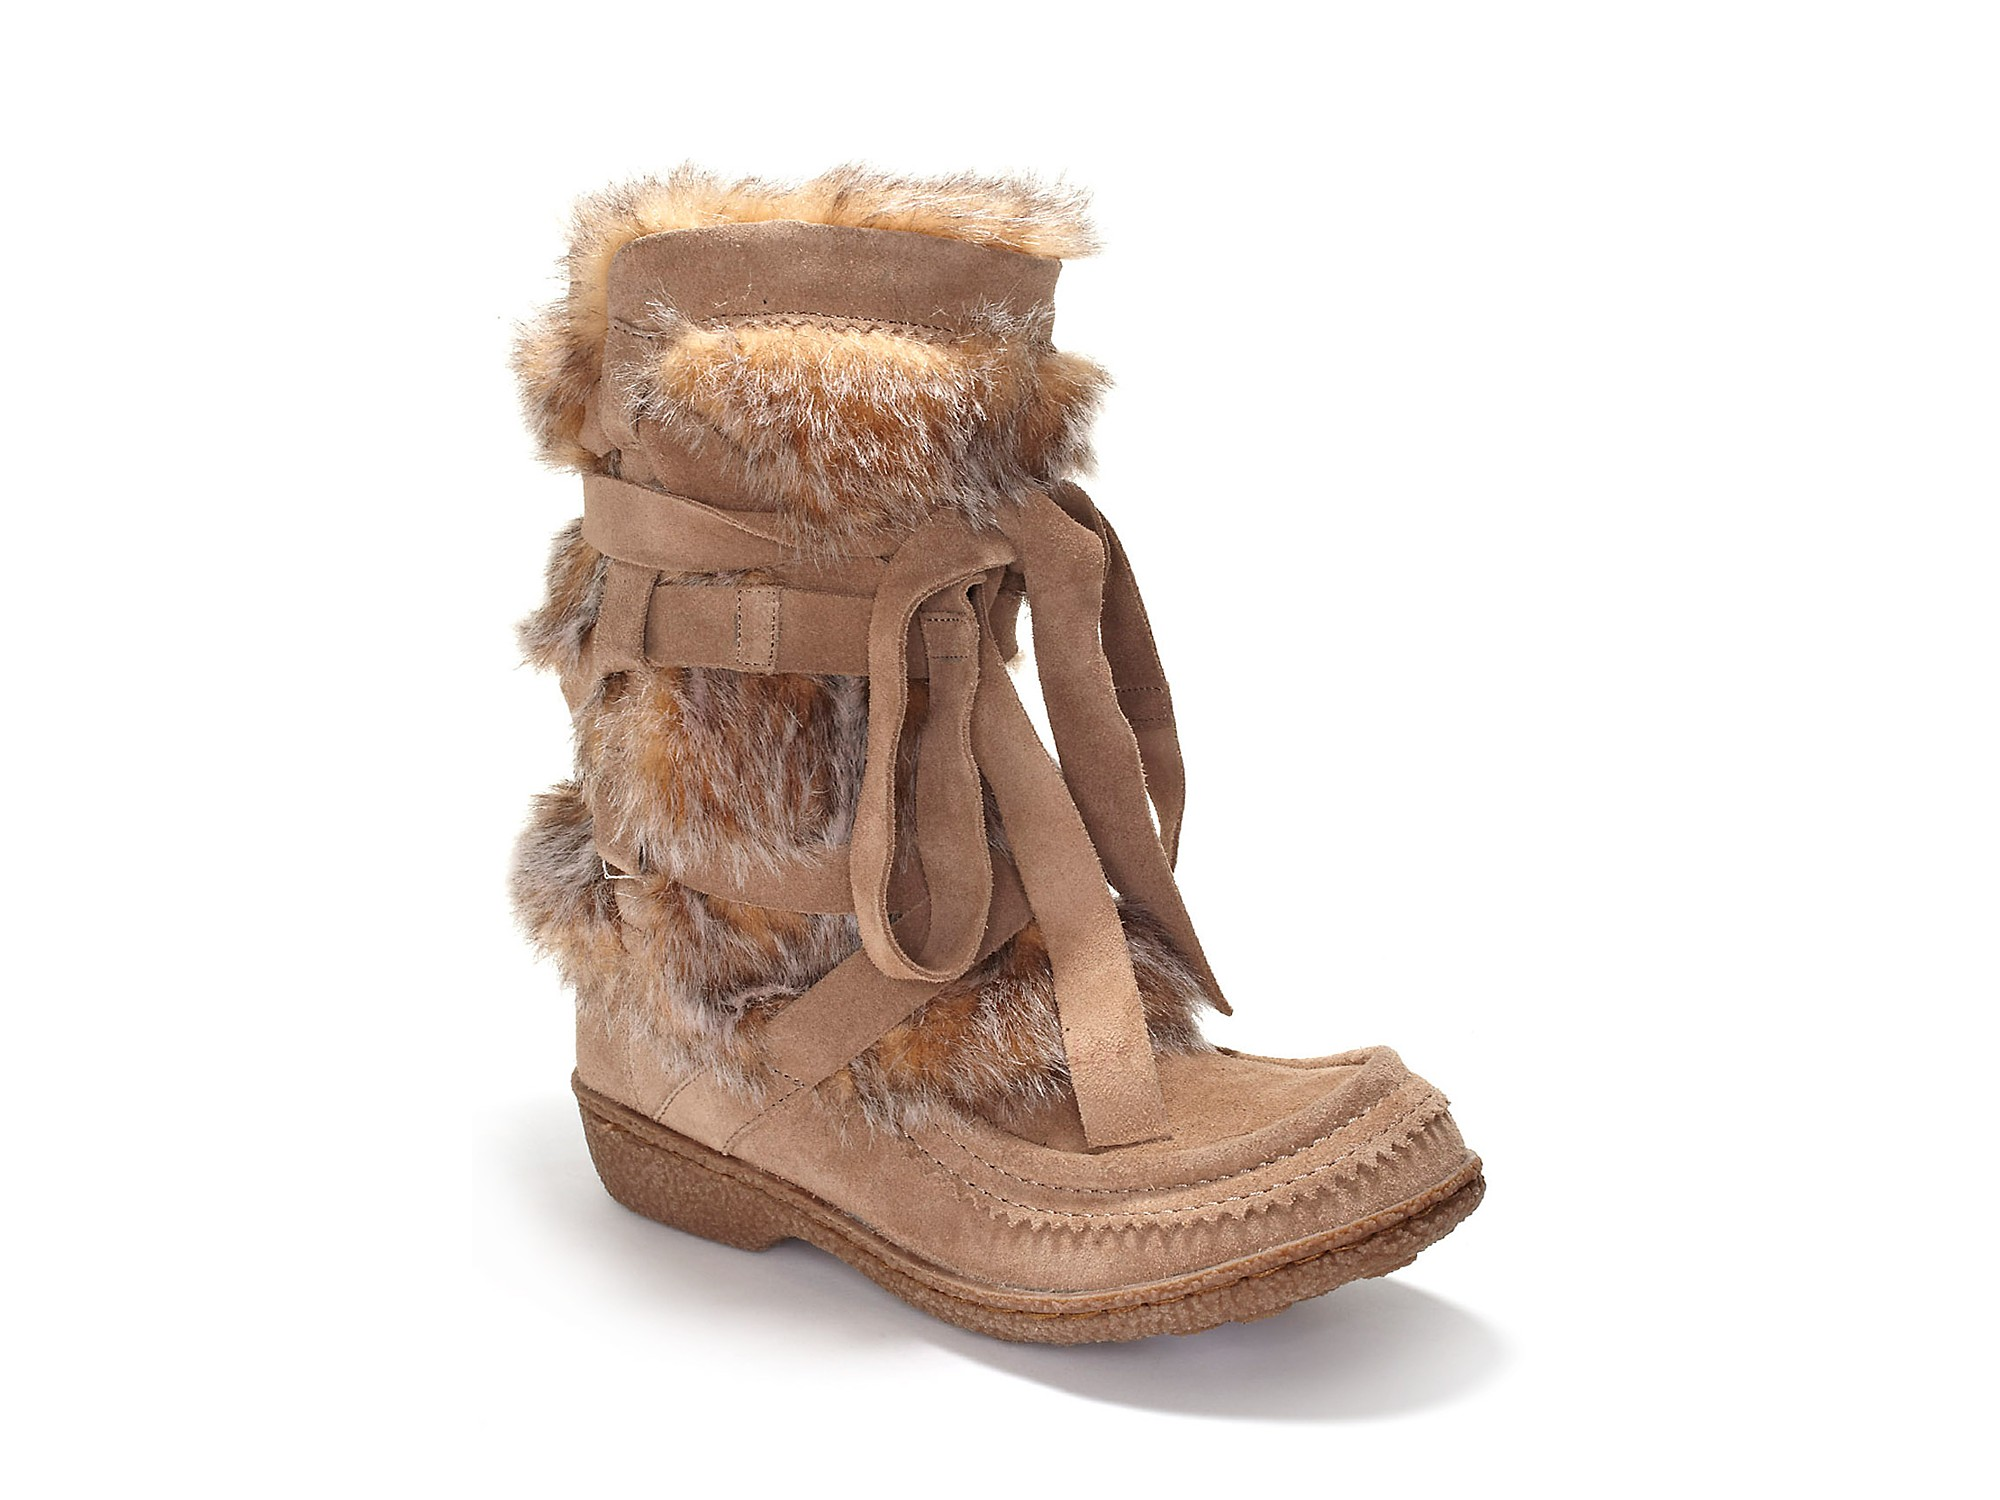 eb12c0048a1dc Lyst - Sam Edelman Sam Edelman Meiko Weather Boots in Natural